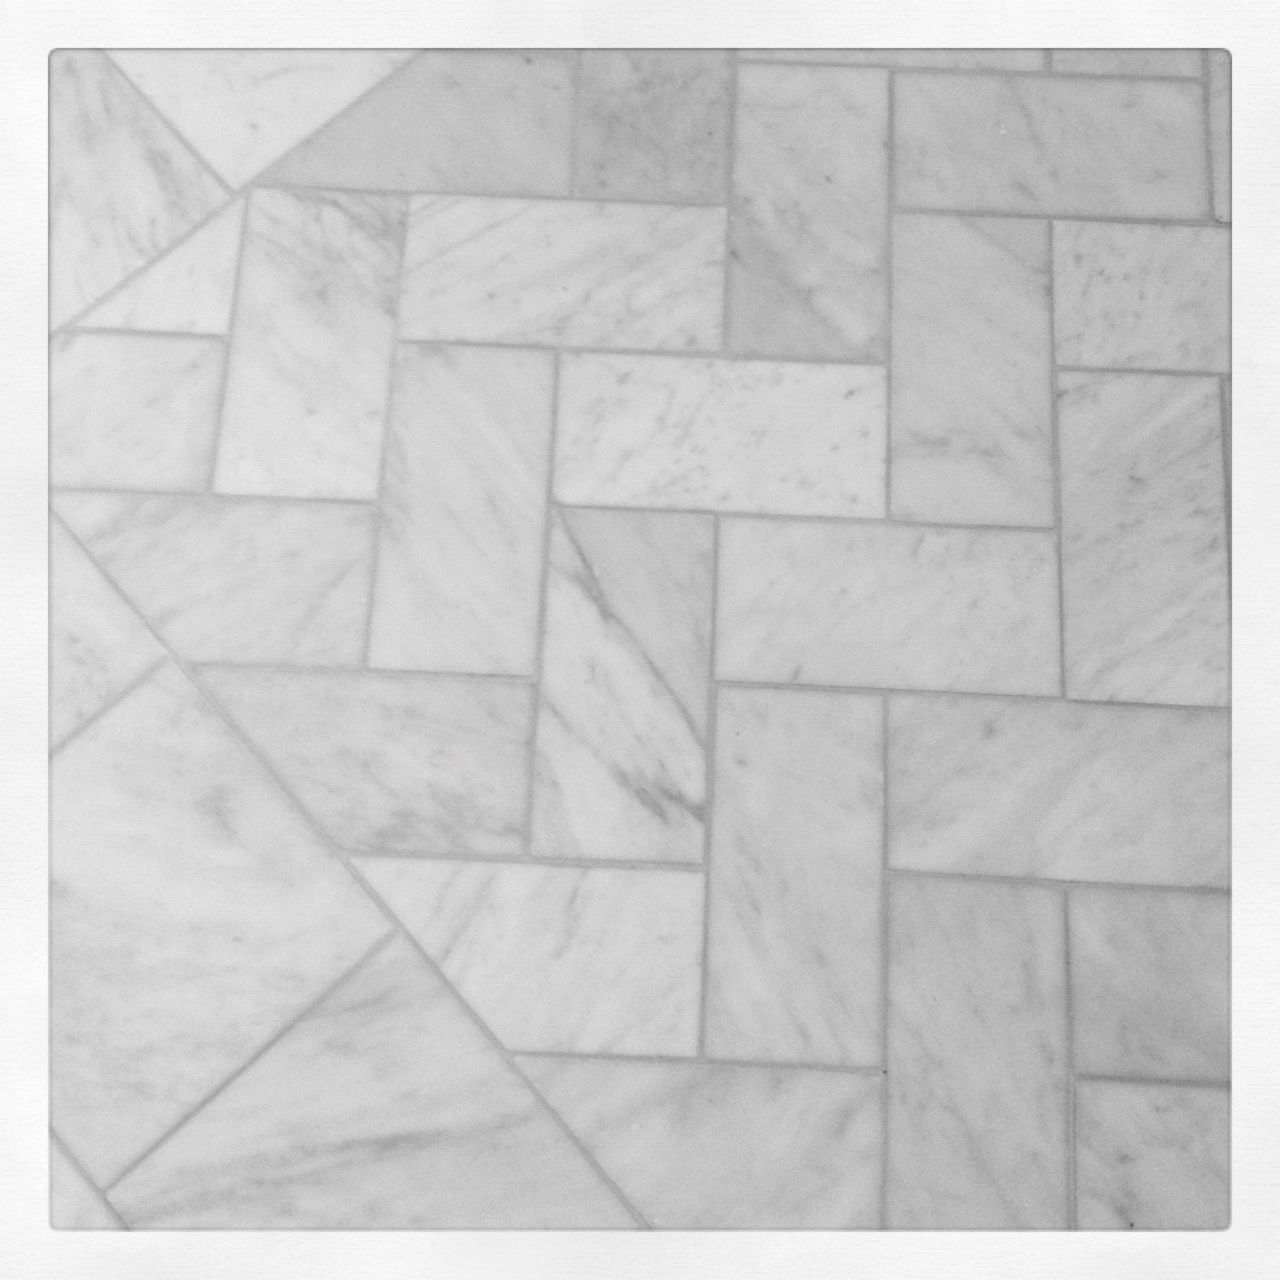 Love this tile pattern for the master bathroom floor for Subway tile patterns